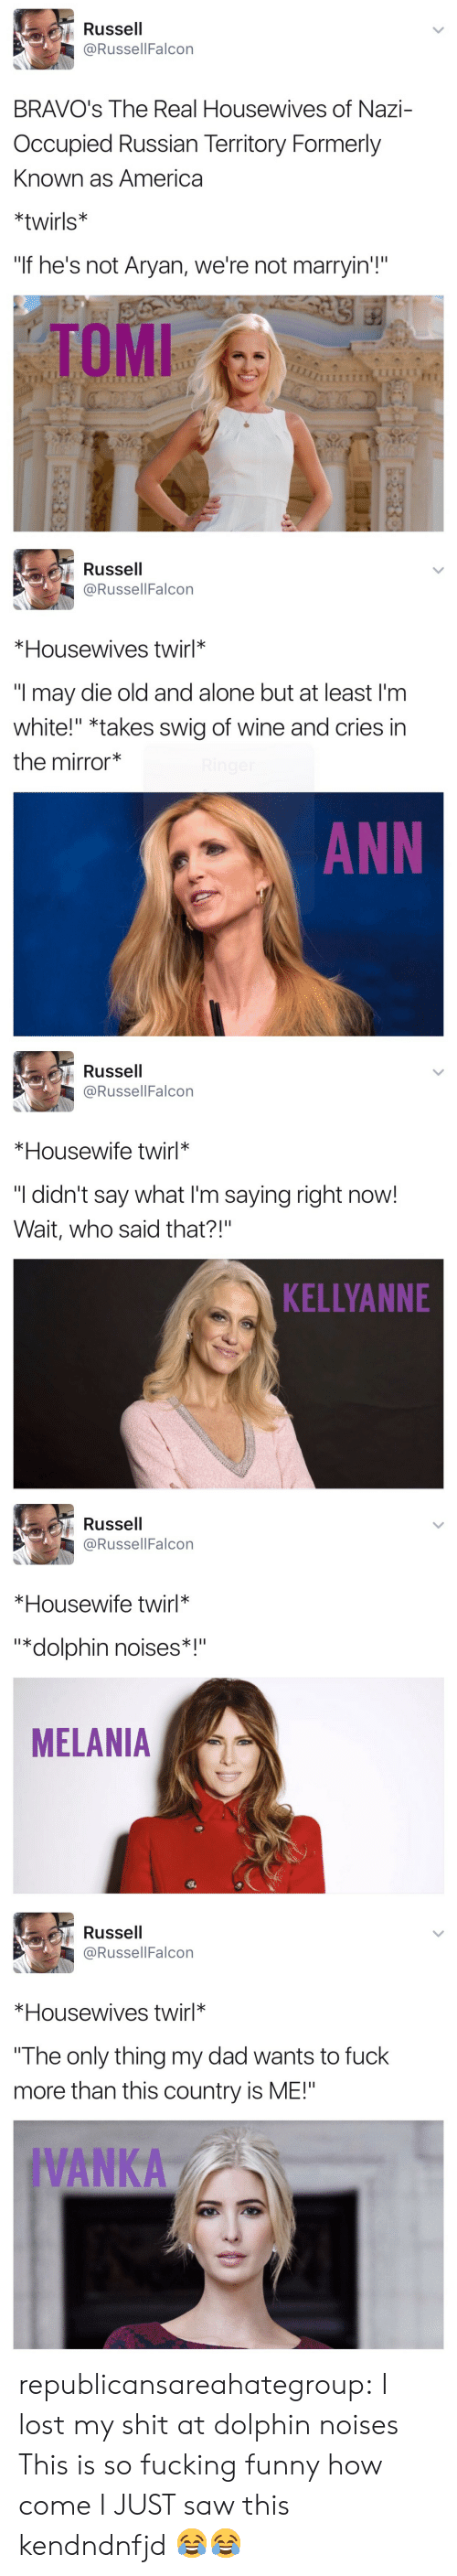 """Being Alone, America, and Dad: Russell  @RussellFalcon  BRAVO's The Real Housewives of Nazi-  Occupied Russian Territory Formerly  Known as America  *twirls*  """"If he's not Aryan, we're not marryin'!""""  TOMI   Russell  @RussellFalcon  *Housewives twirl*  """"I may die old and alone but at least I'm  white!"""" *takes swig of wine and cries in  the mirror  ANN   Russell  @RussellFalcon  *Housewife twirl*  """"I didn't say what I'm saying right now!  Wait, who said that?!""""  KELLYANNE   Russell  @RussellFalcon  *Housewife twirl*  """"*dolphin noises*  MELANIA   Russell  @RussellFalcon  *Housewives twirl*  The only thing my dad wants to fuck  more than this country is ME!""""  IVANKA republicansareahategroup:  I lost my shit at dolphin noises  This is so fucking funny how come I JUST saw this kendndnfjd 😂😂"""